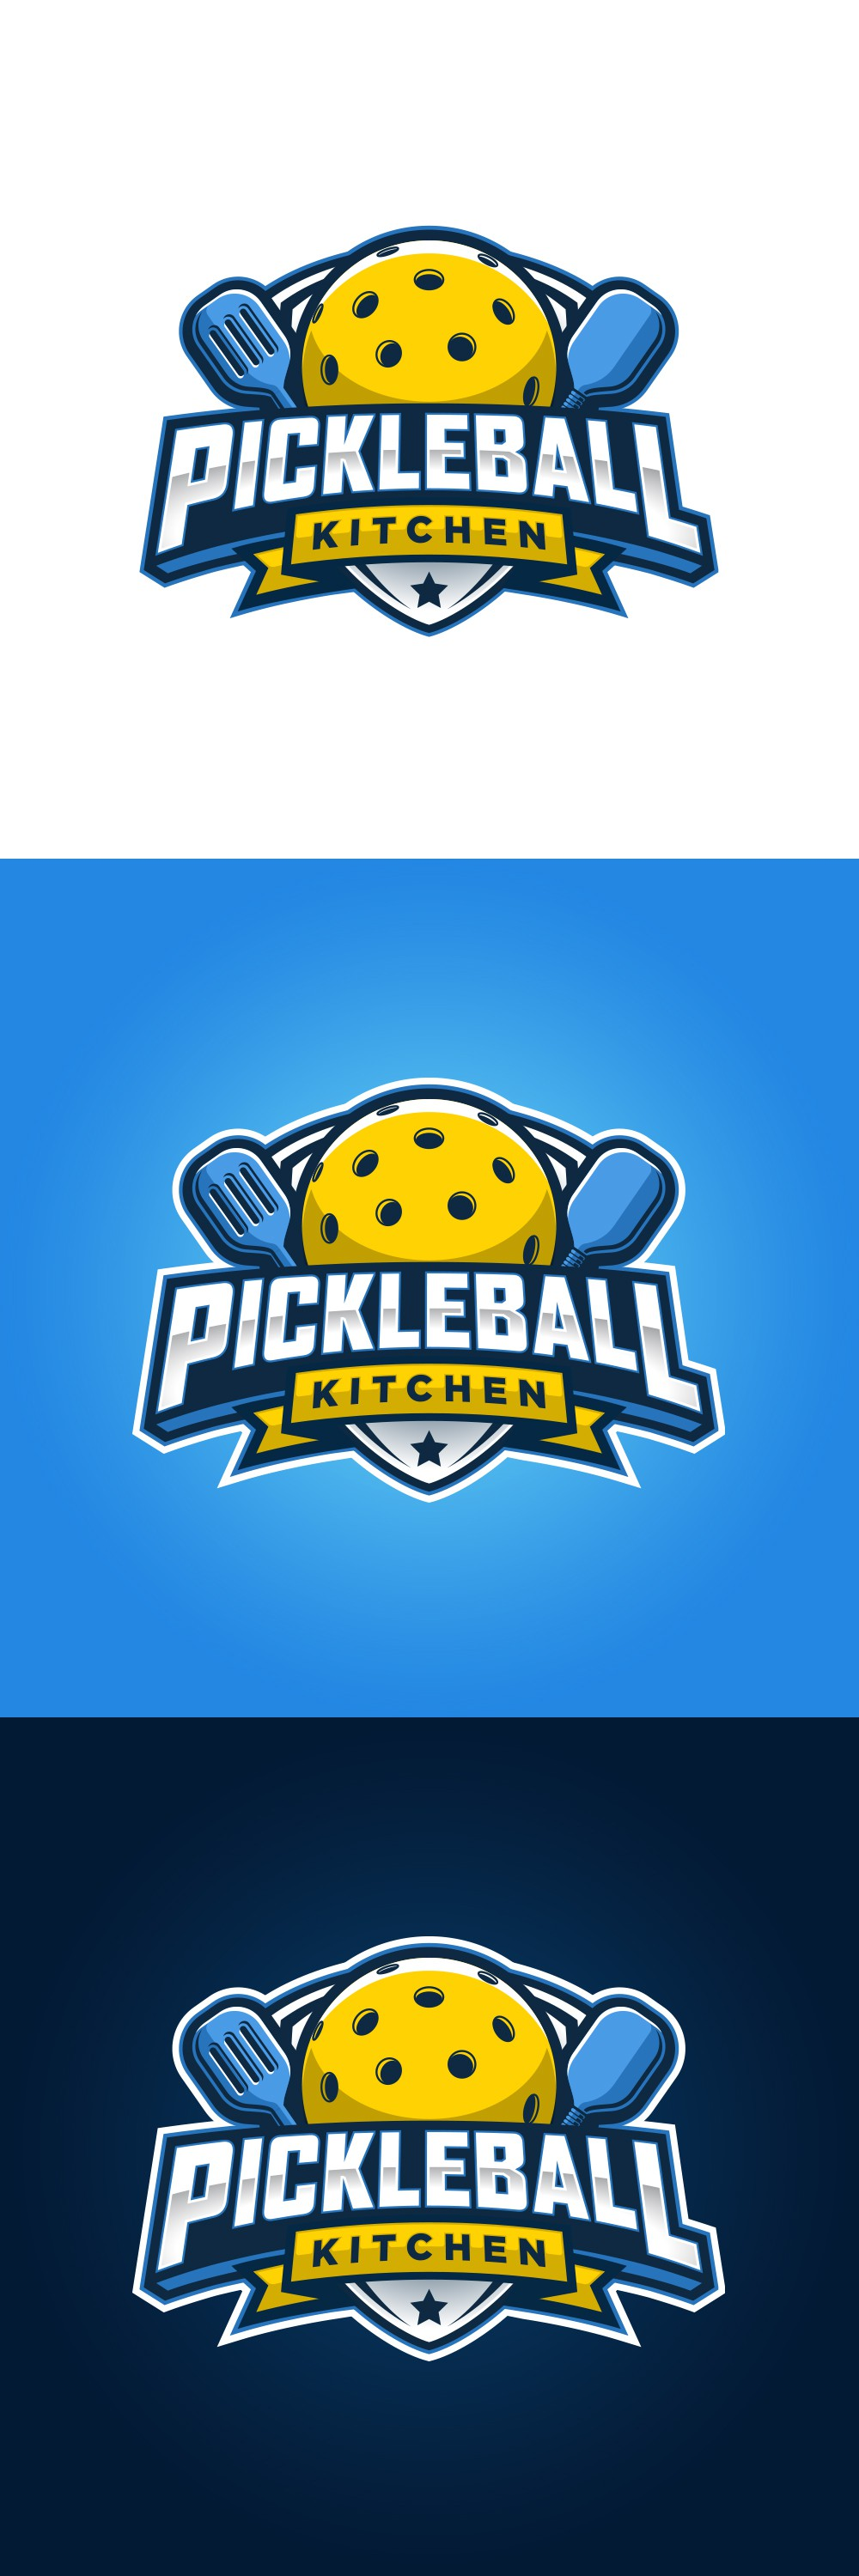 Pickleball Kitchen needs a sweet logo for a rapidly growing sport!